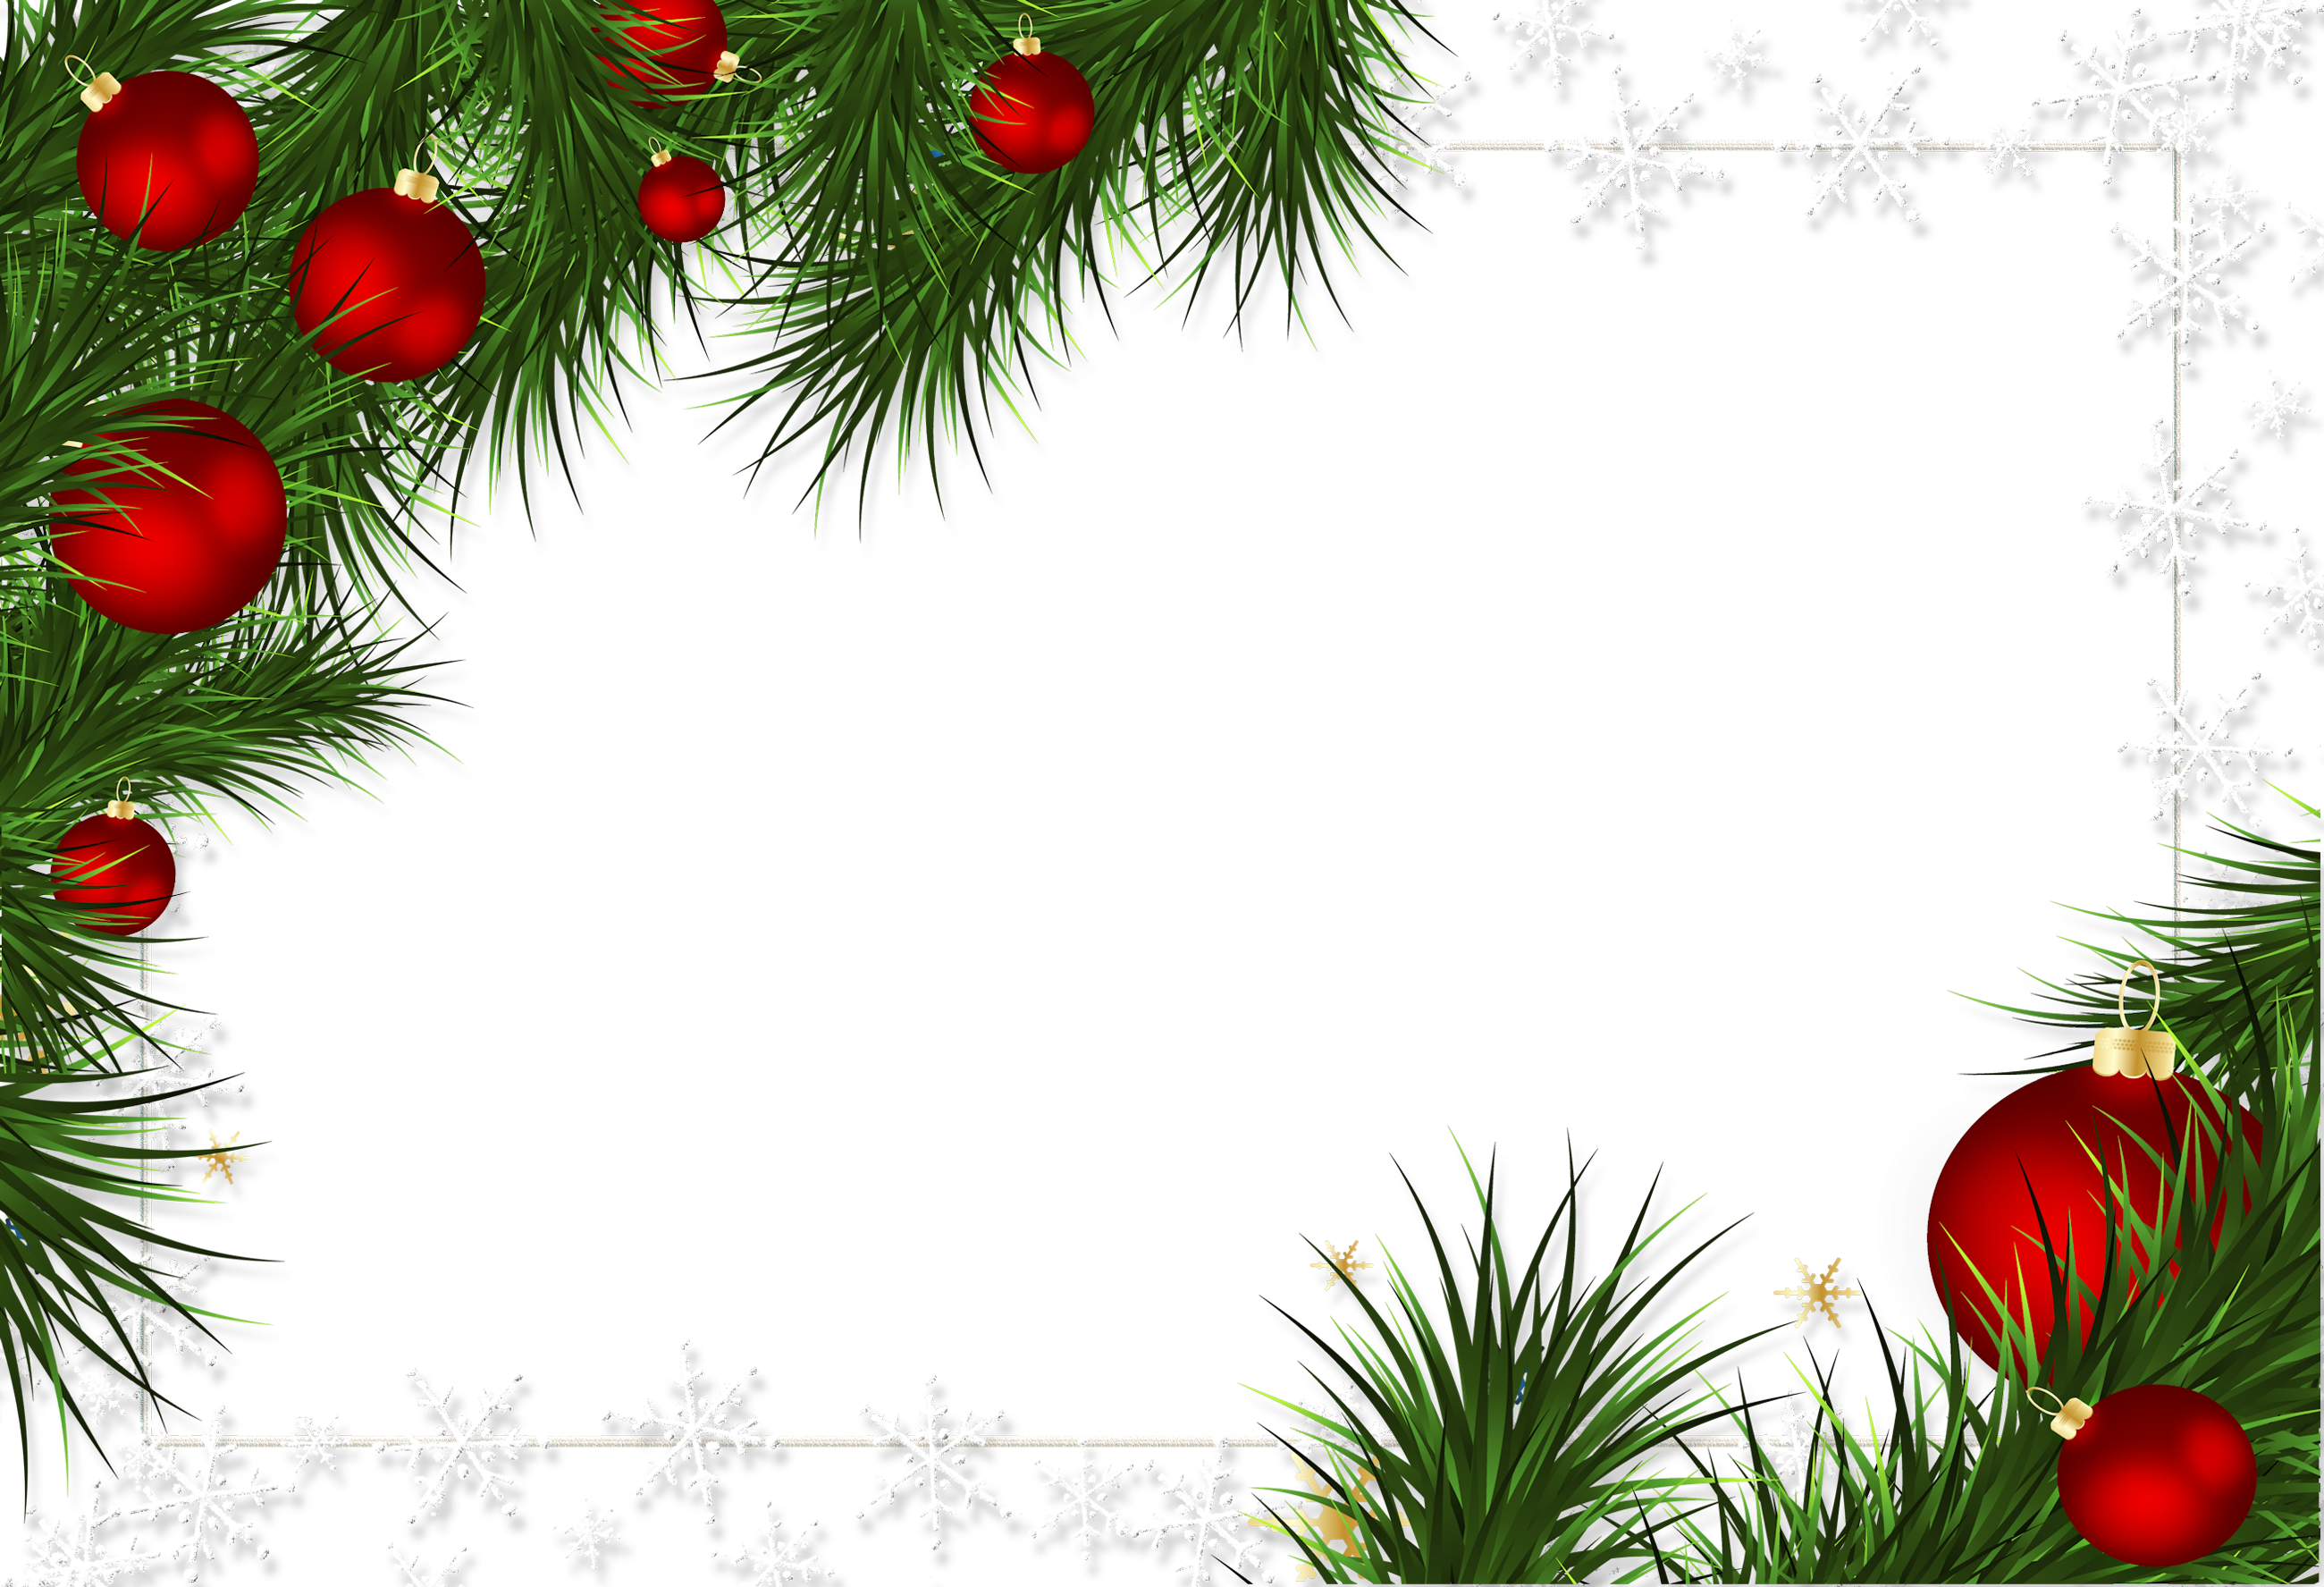 Picture frame christmas ornaments - Christmas Transparent Png Borders And Frames Christmas Christmas Frames Frame Ornaments Pine Png Transparent Png